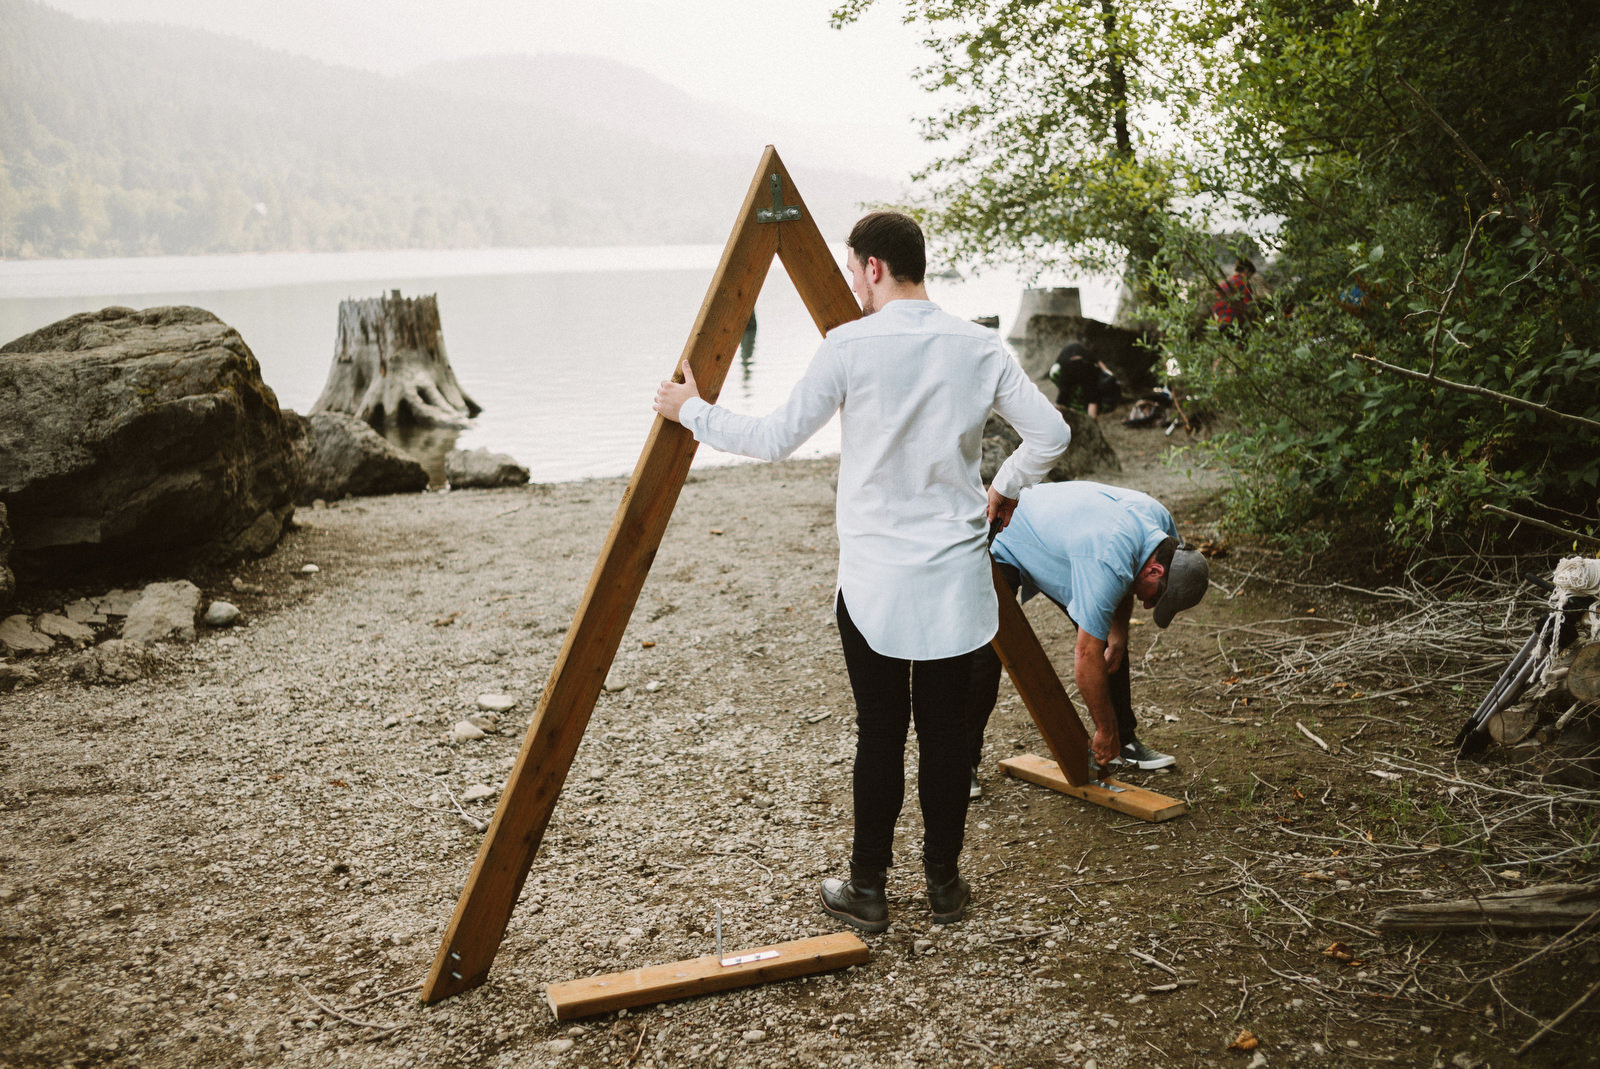 athena-and-camron-seattle-elopement-wedding-benj-haisch-rattlesnake-lake-christian-couple-goals35